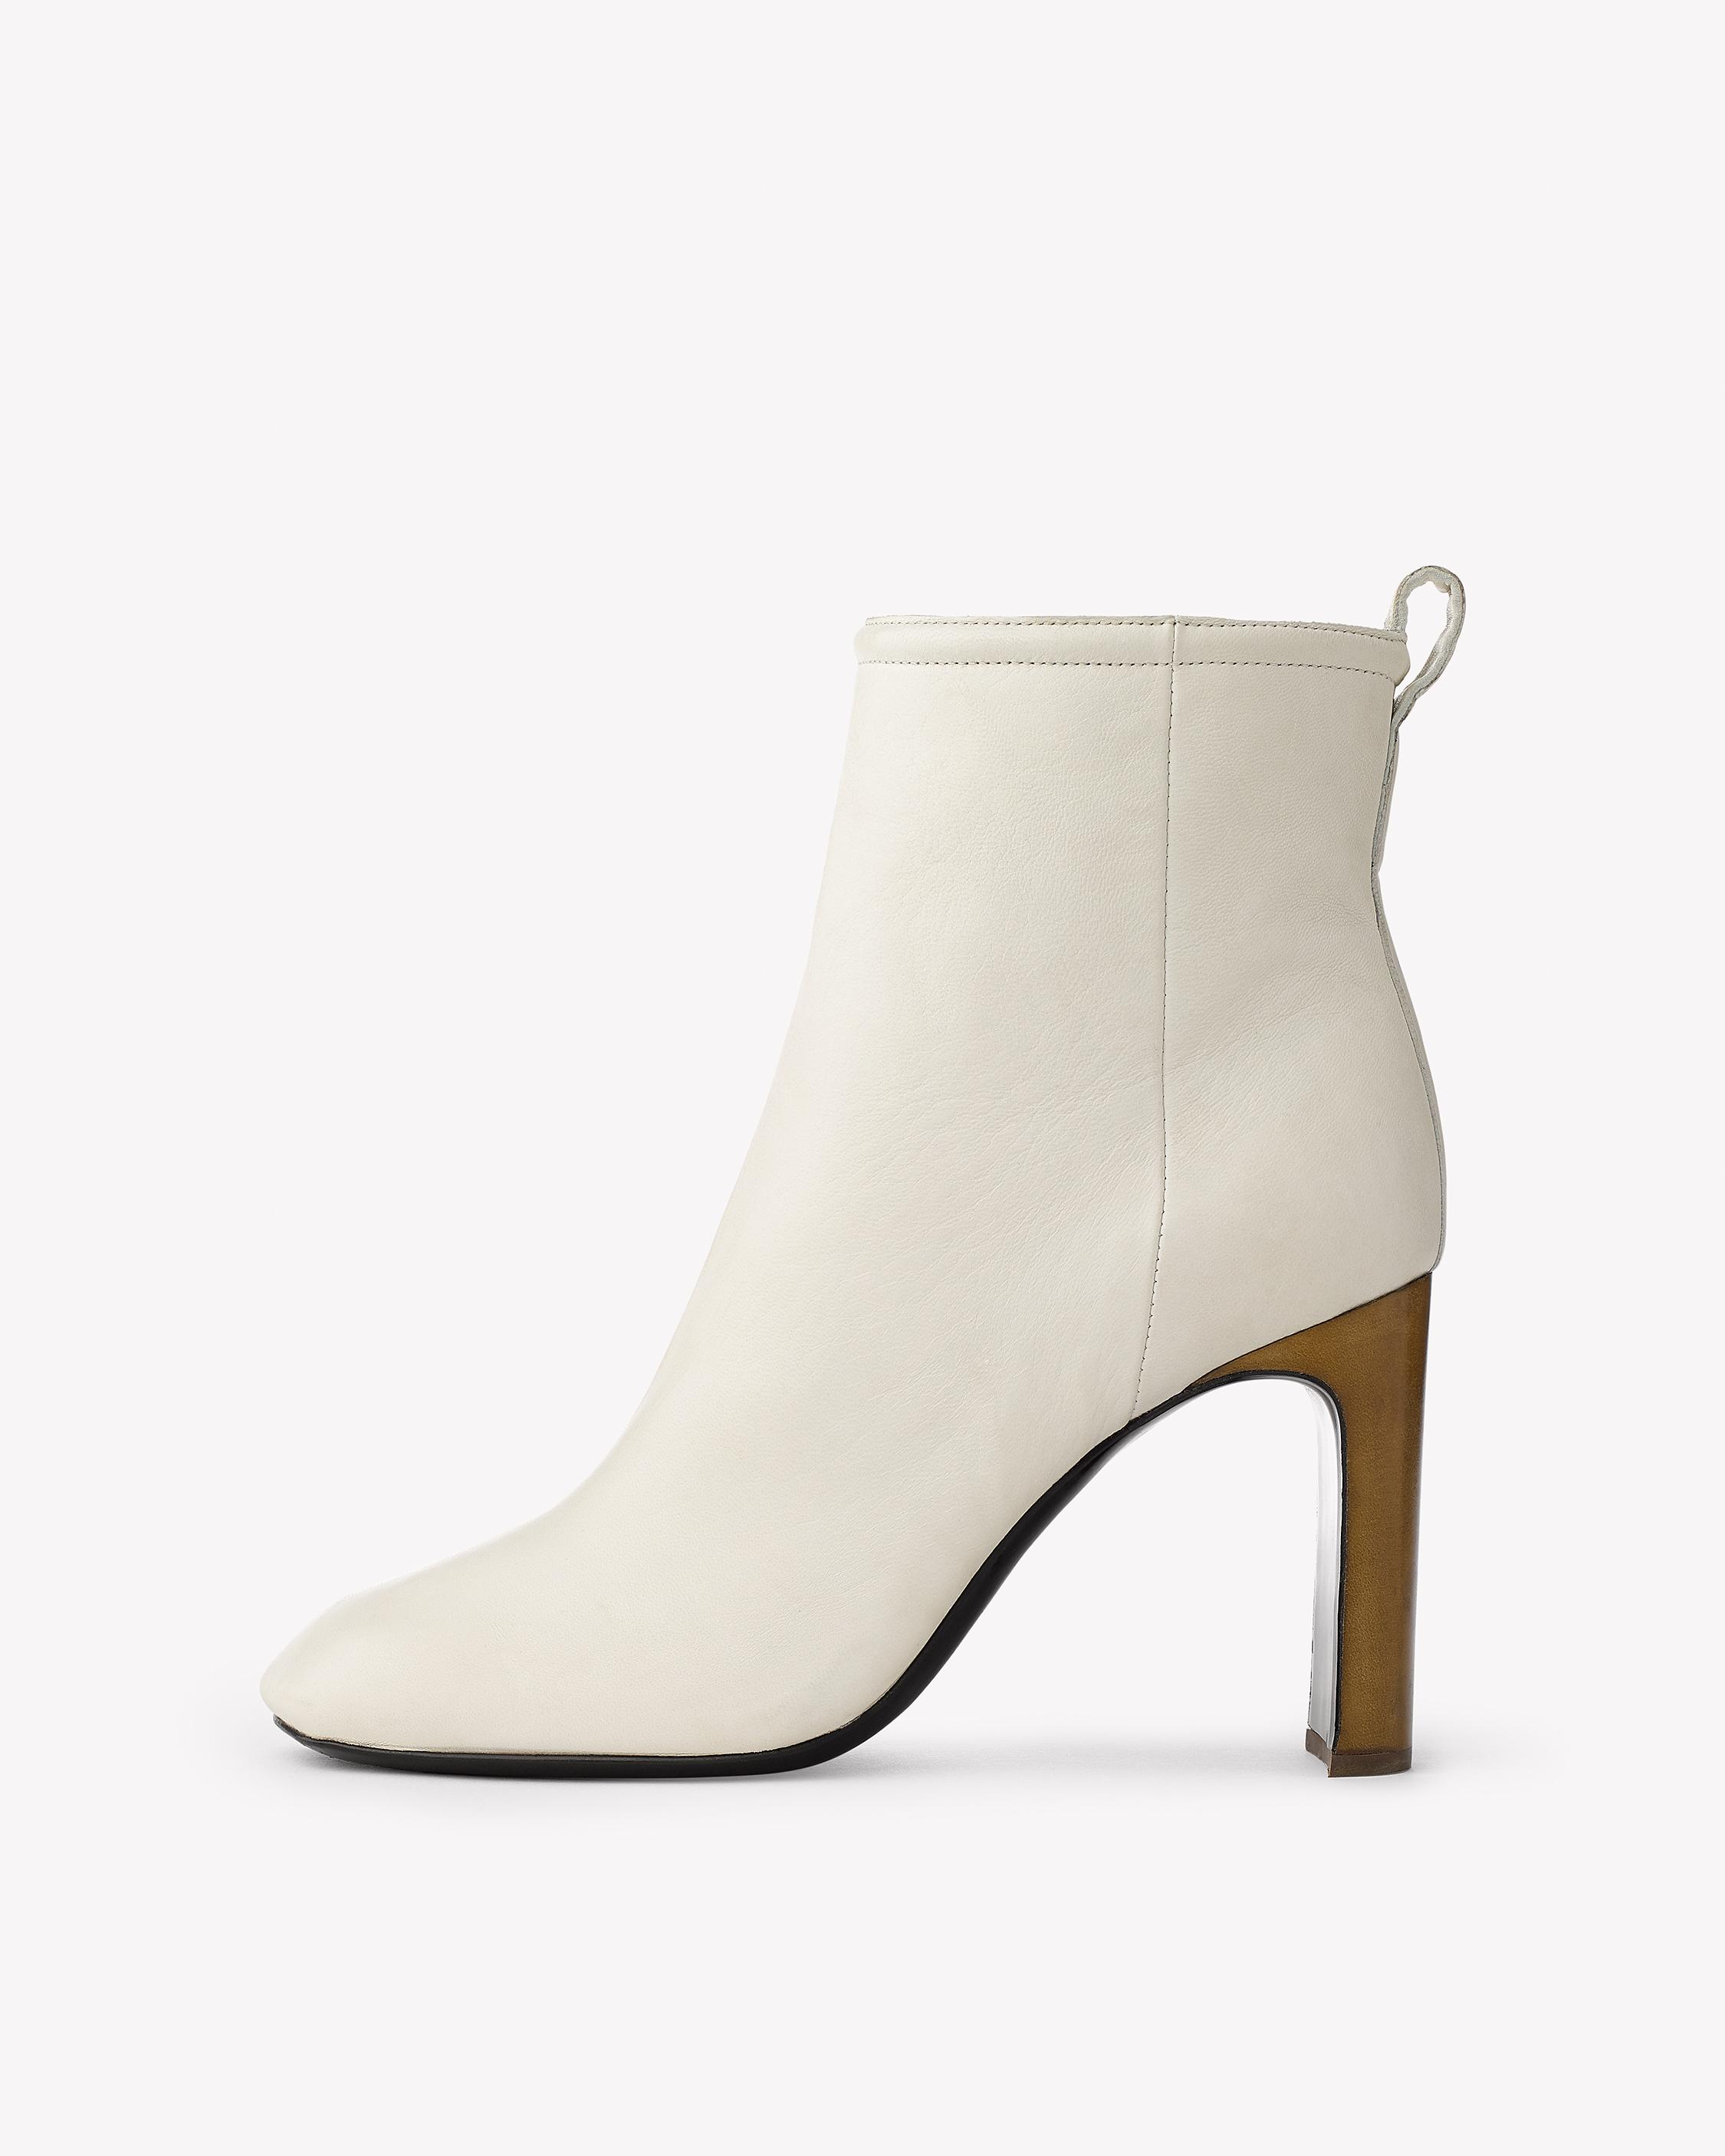 rag rag rag amp; bone Boot Ellis Women Shoes ItqnTv6w